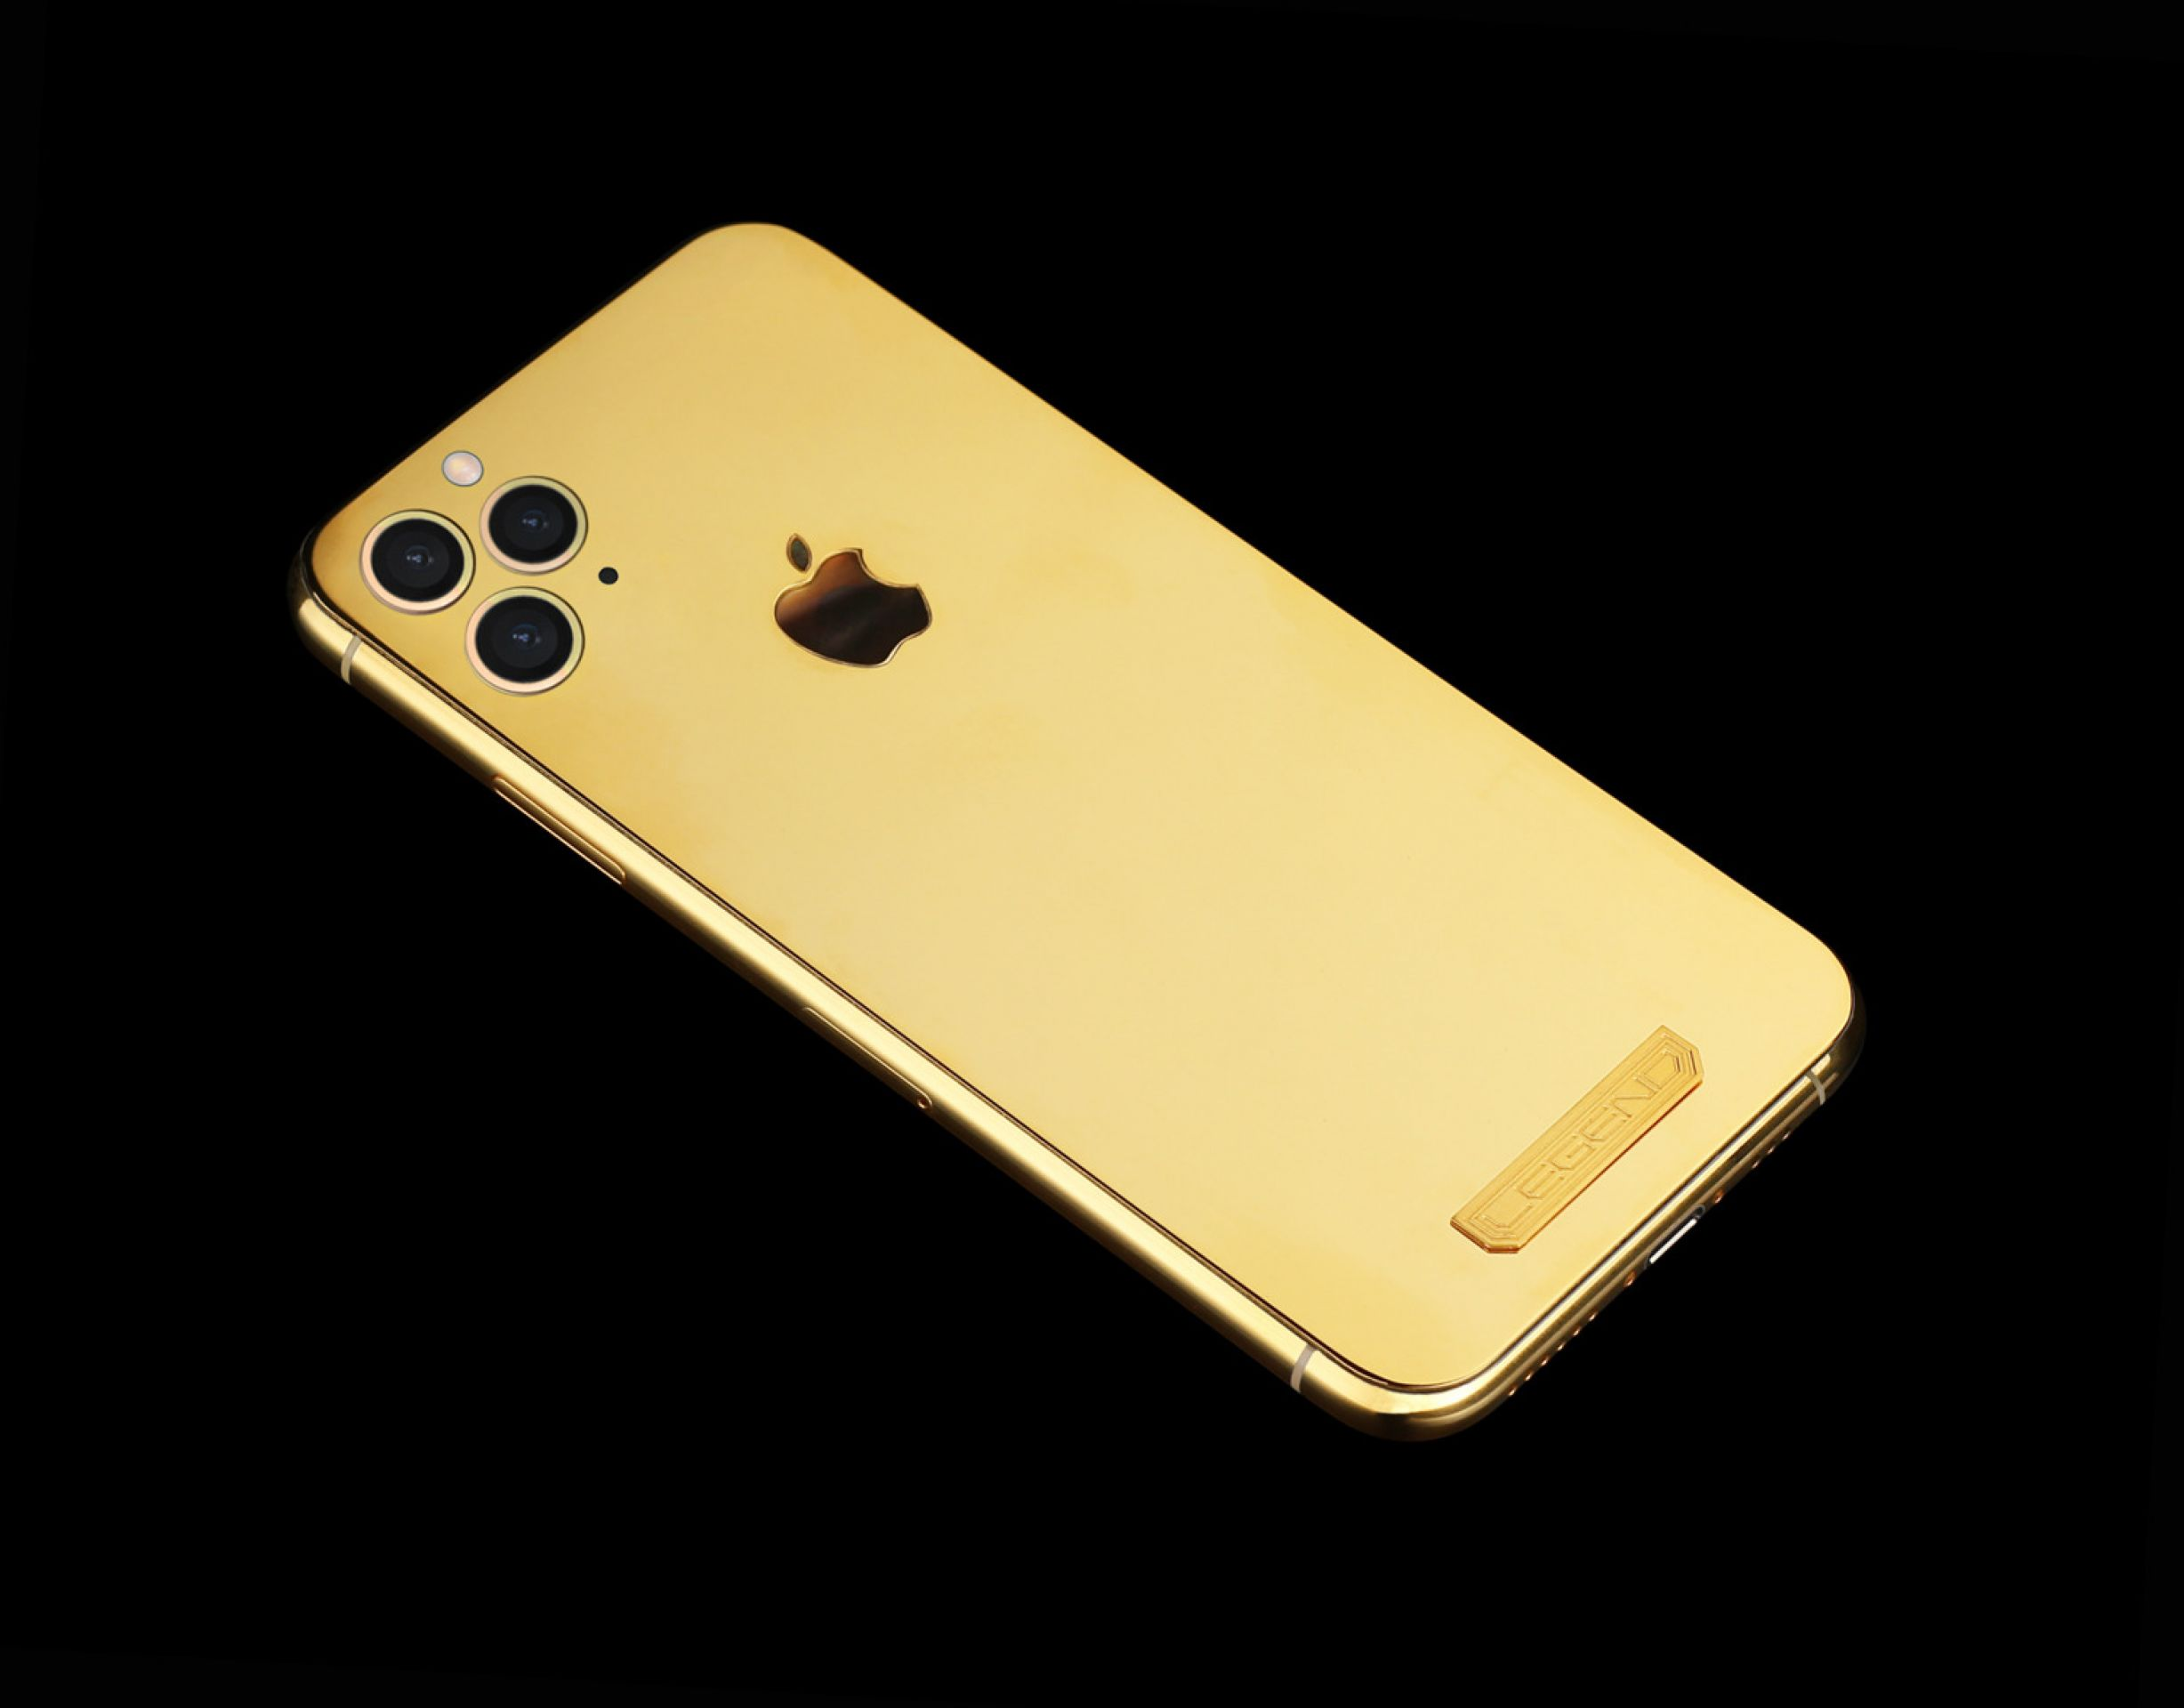 24k gold iPhone 11 Pro AURUM by Legend with mother of pearl Apple logo, airpods